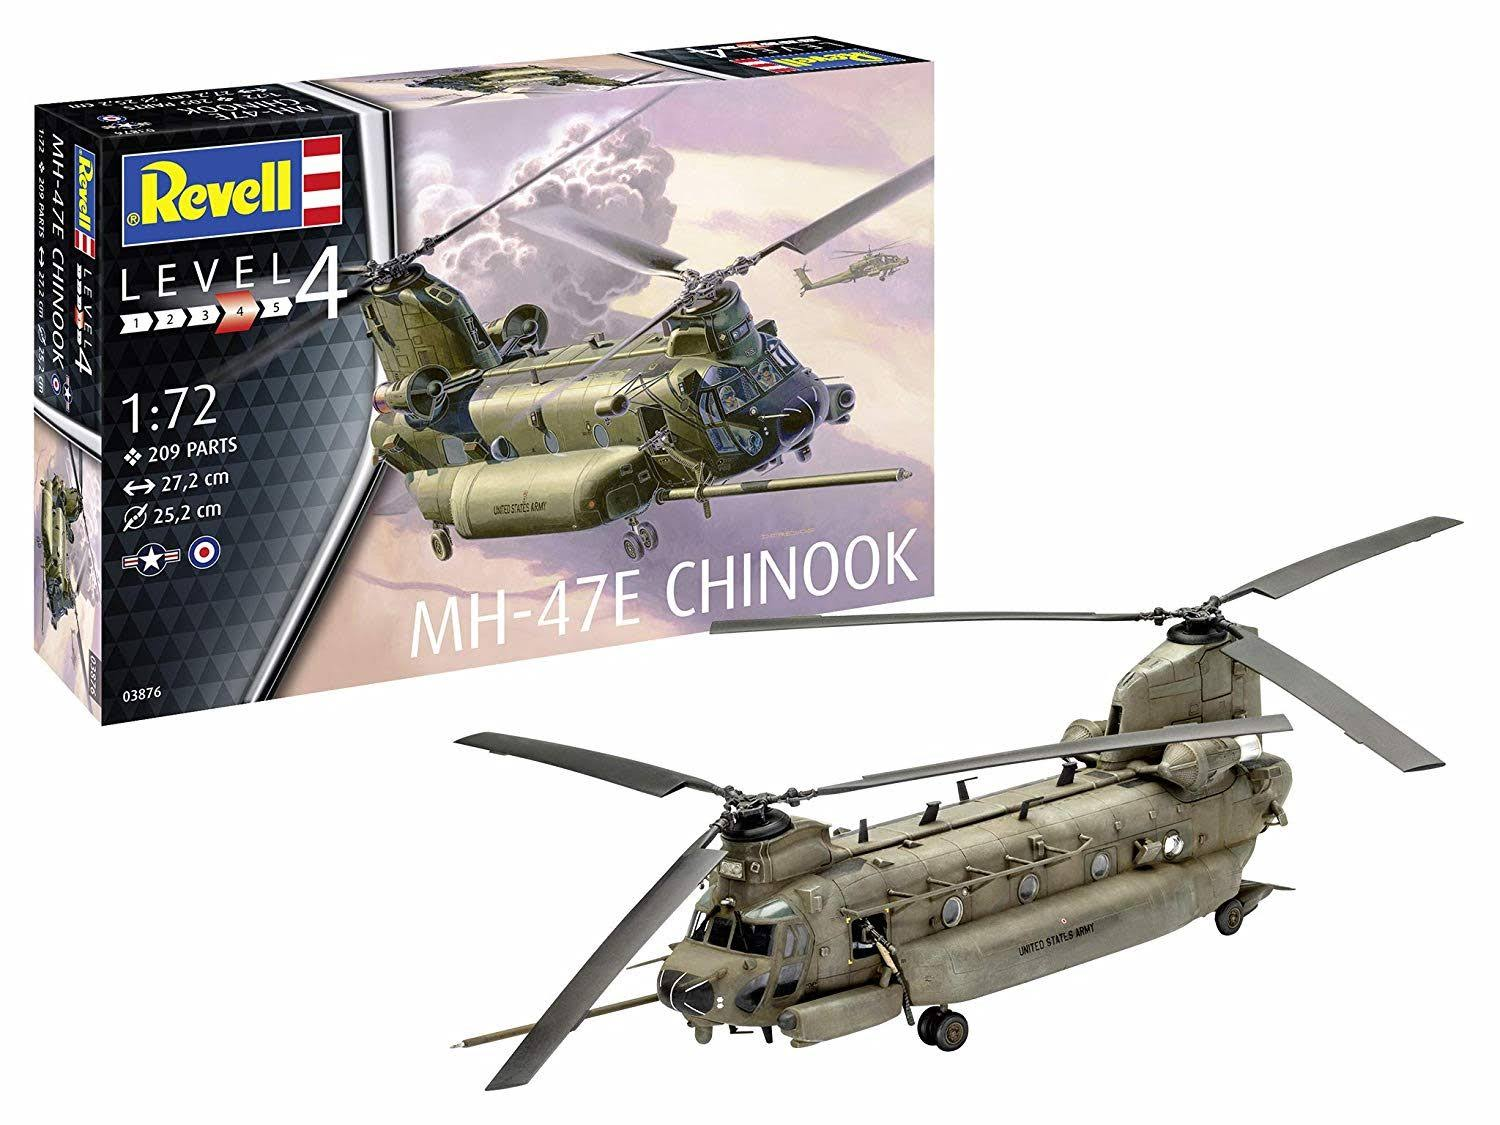 Revell Boeing MH-47E Chinook Helicopter Model Kit - Scale 1:72